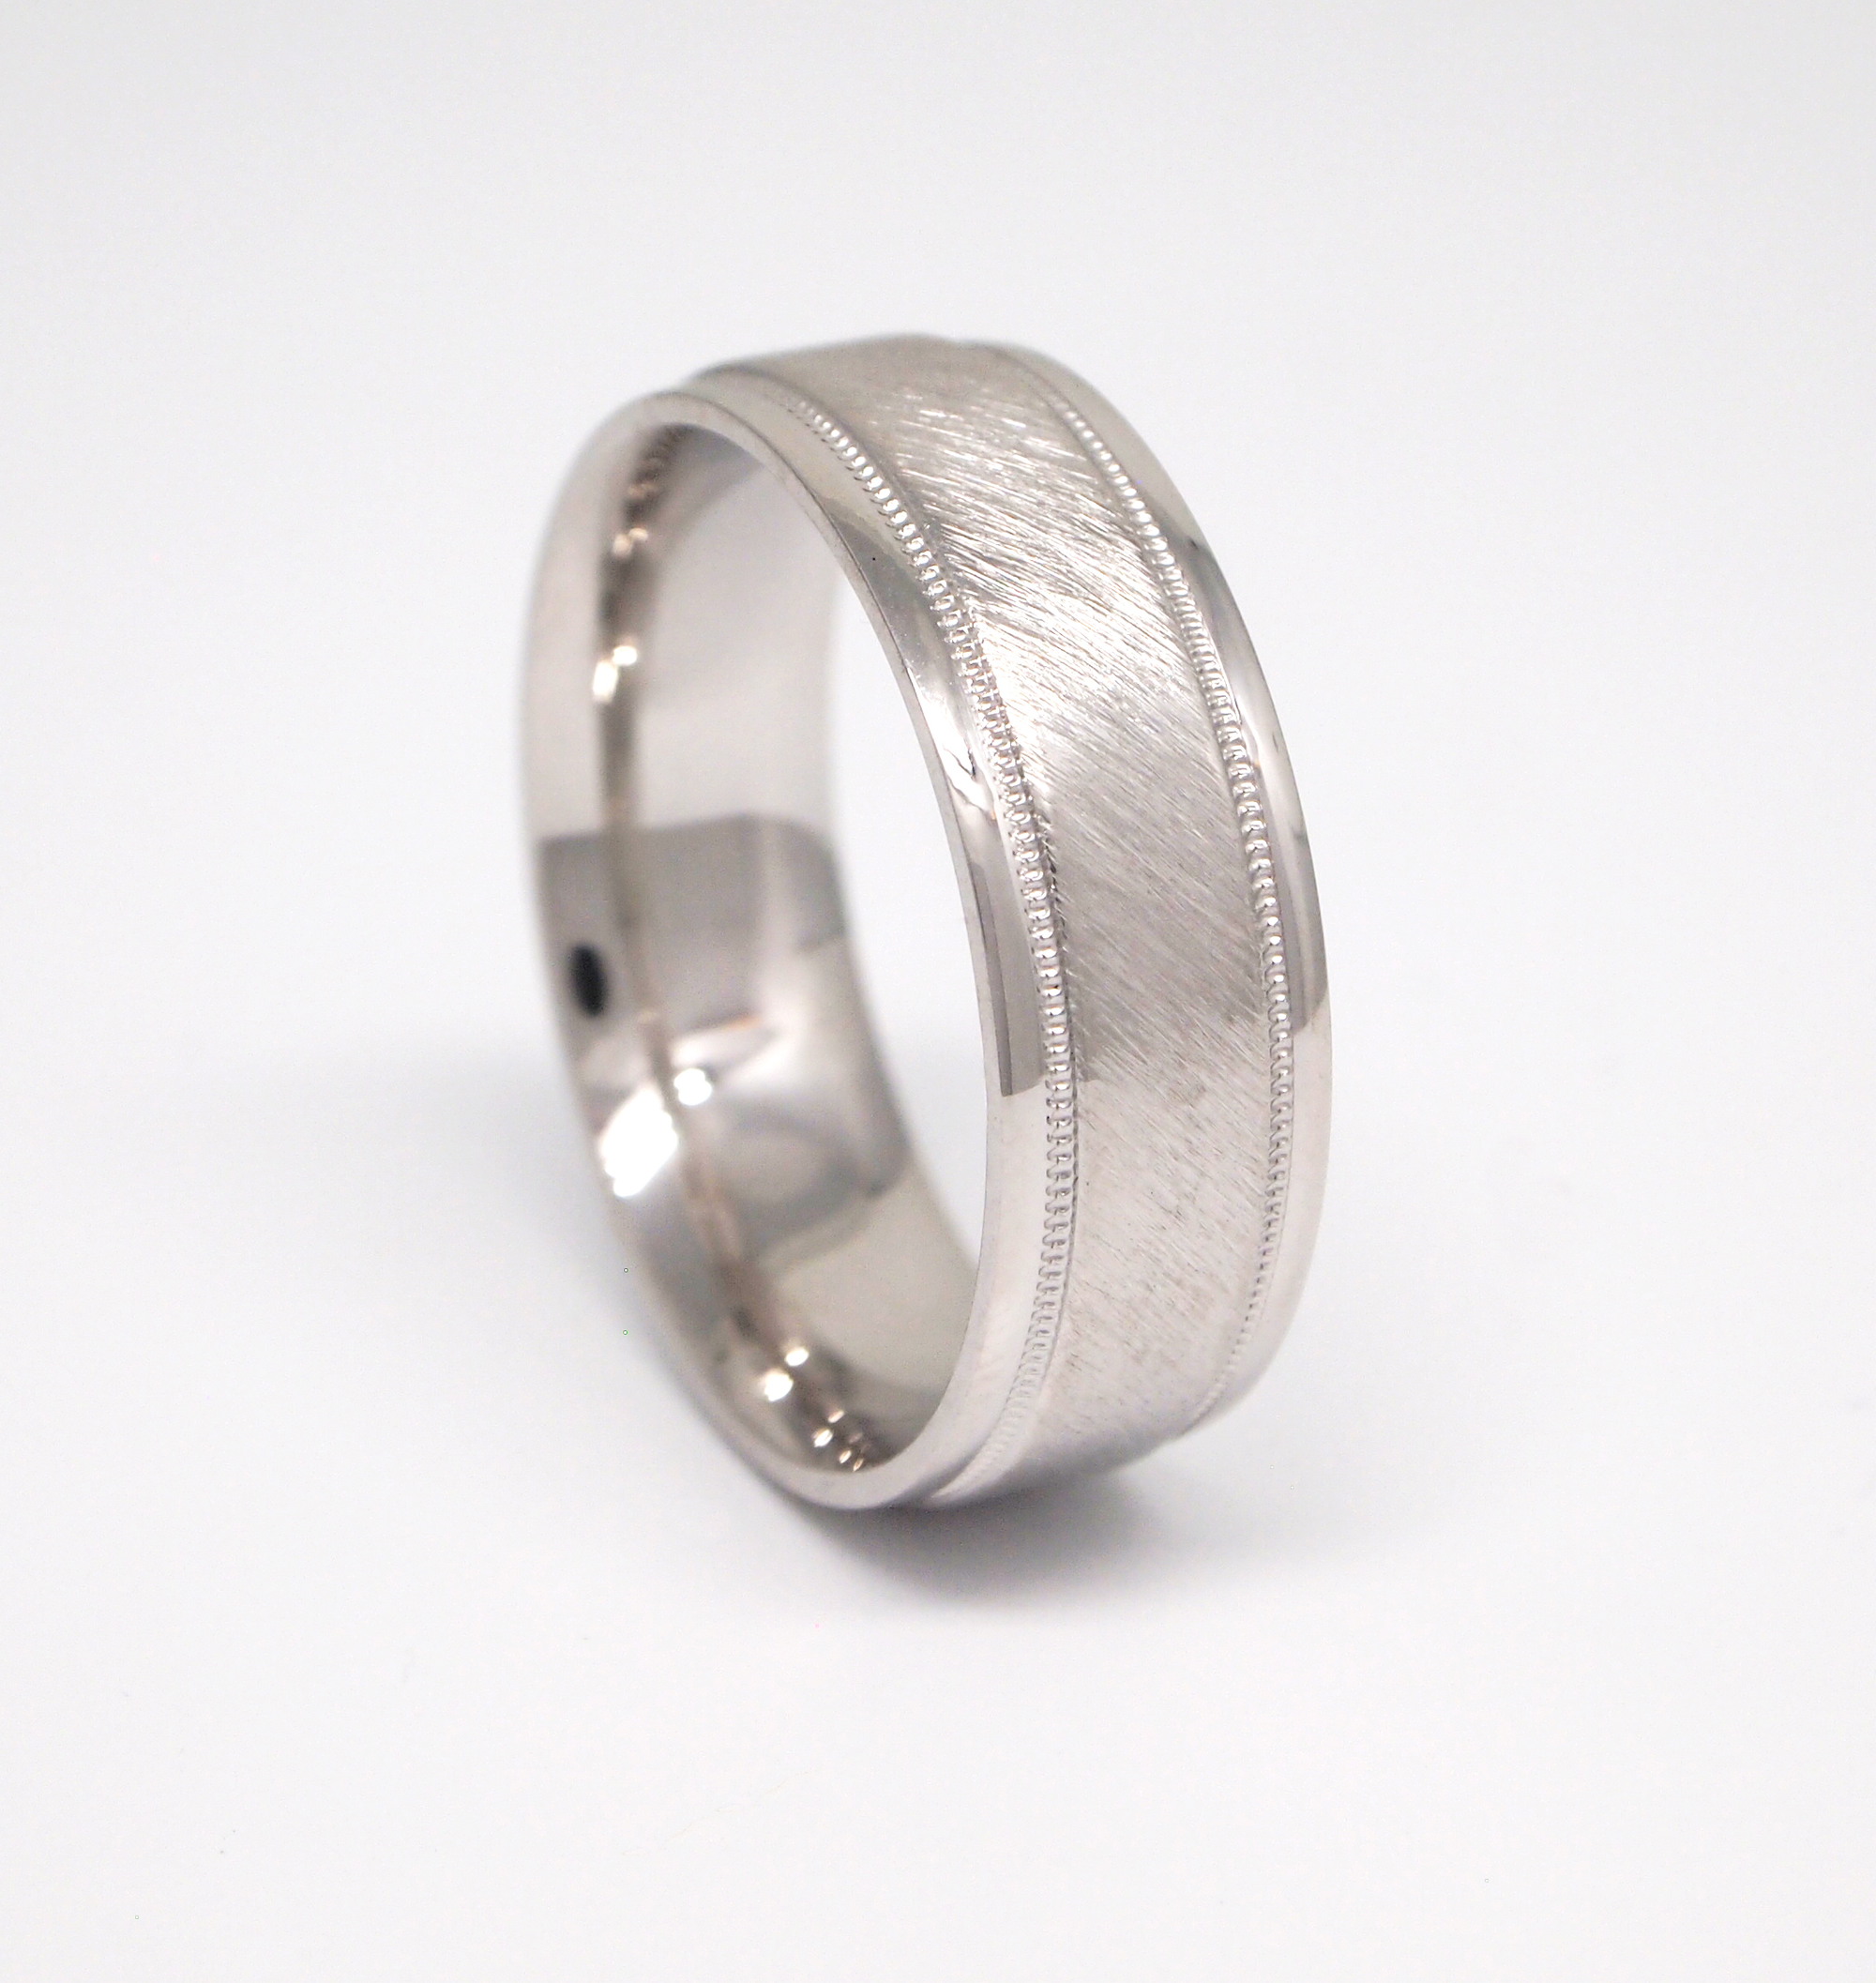 14k white gold 7mm men's wedding band with a bark finish center, bright rounded edges, and milgrain channels.